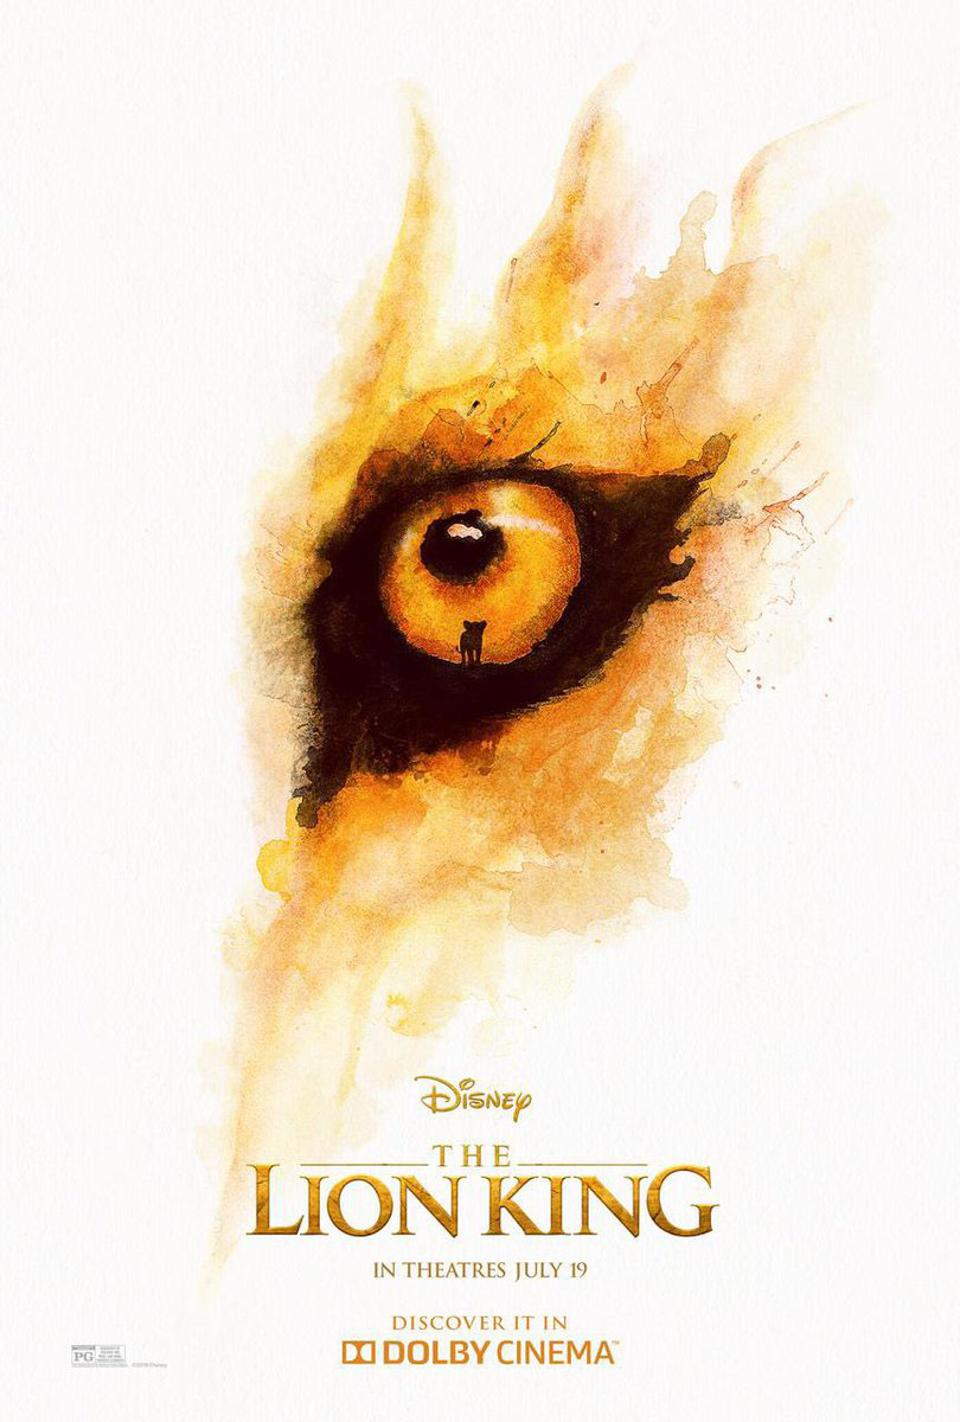 Official Dolby Cinema poster for Disney's ″The Lion King″